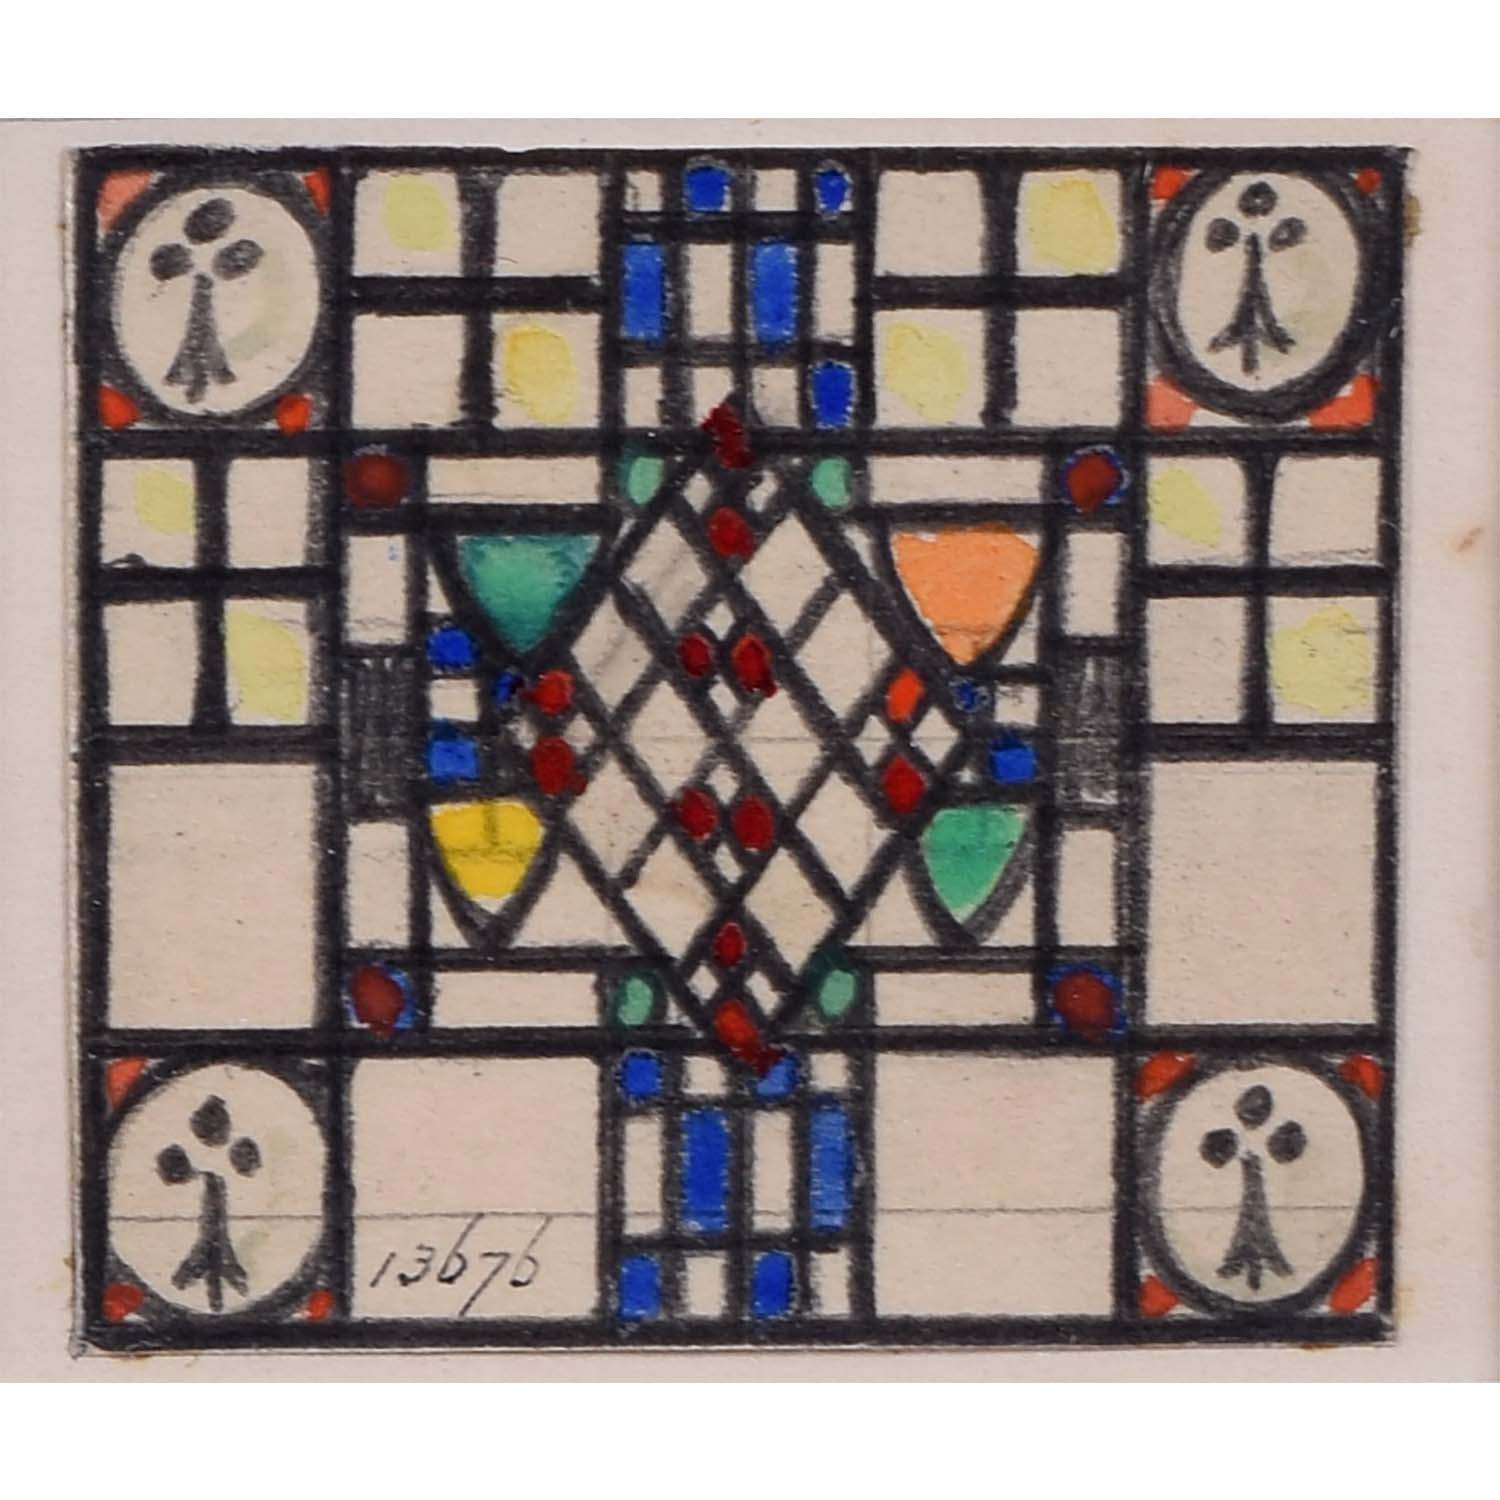 Florence Camm TW Camm Stained Glass Window Design